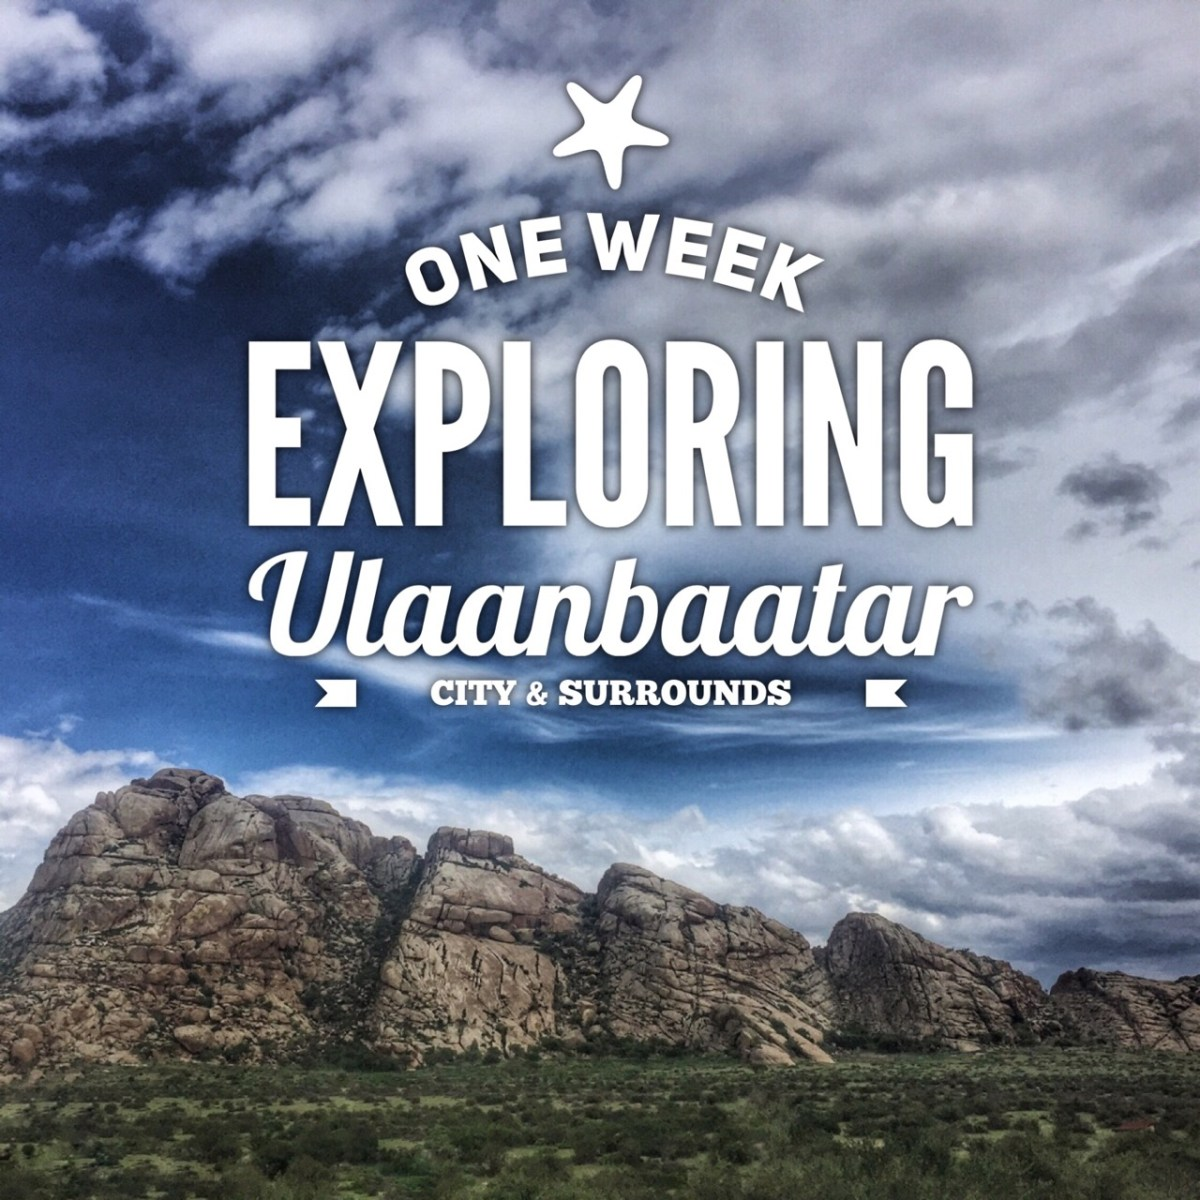 One Week Exploring Ulaanbaatar city & surrounds